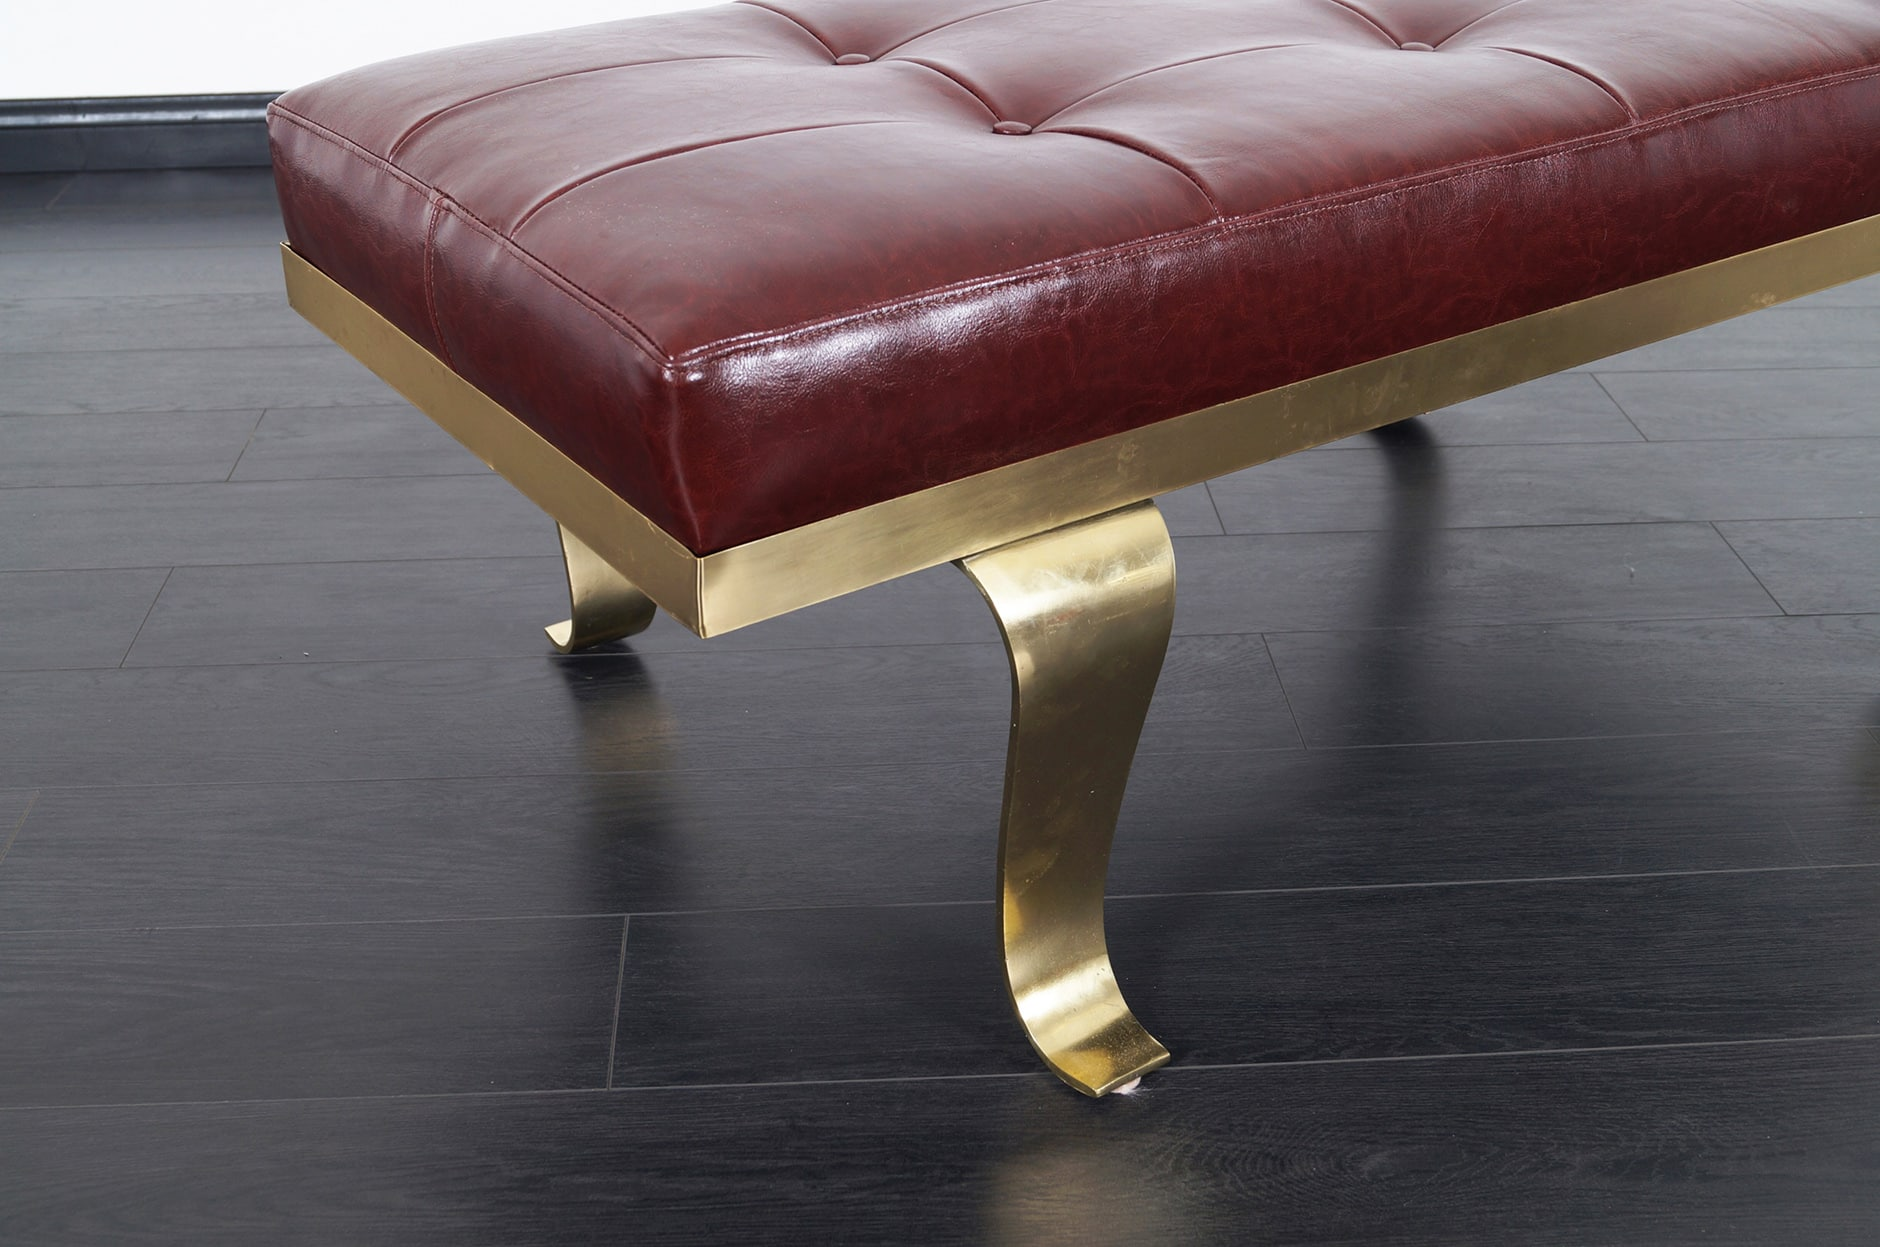 Modernist Brass & Leather Bench Attributed to Arturo Pani